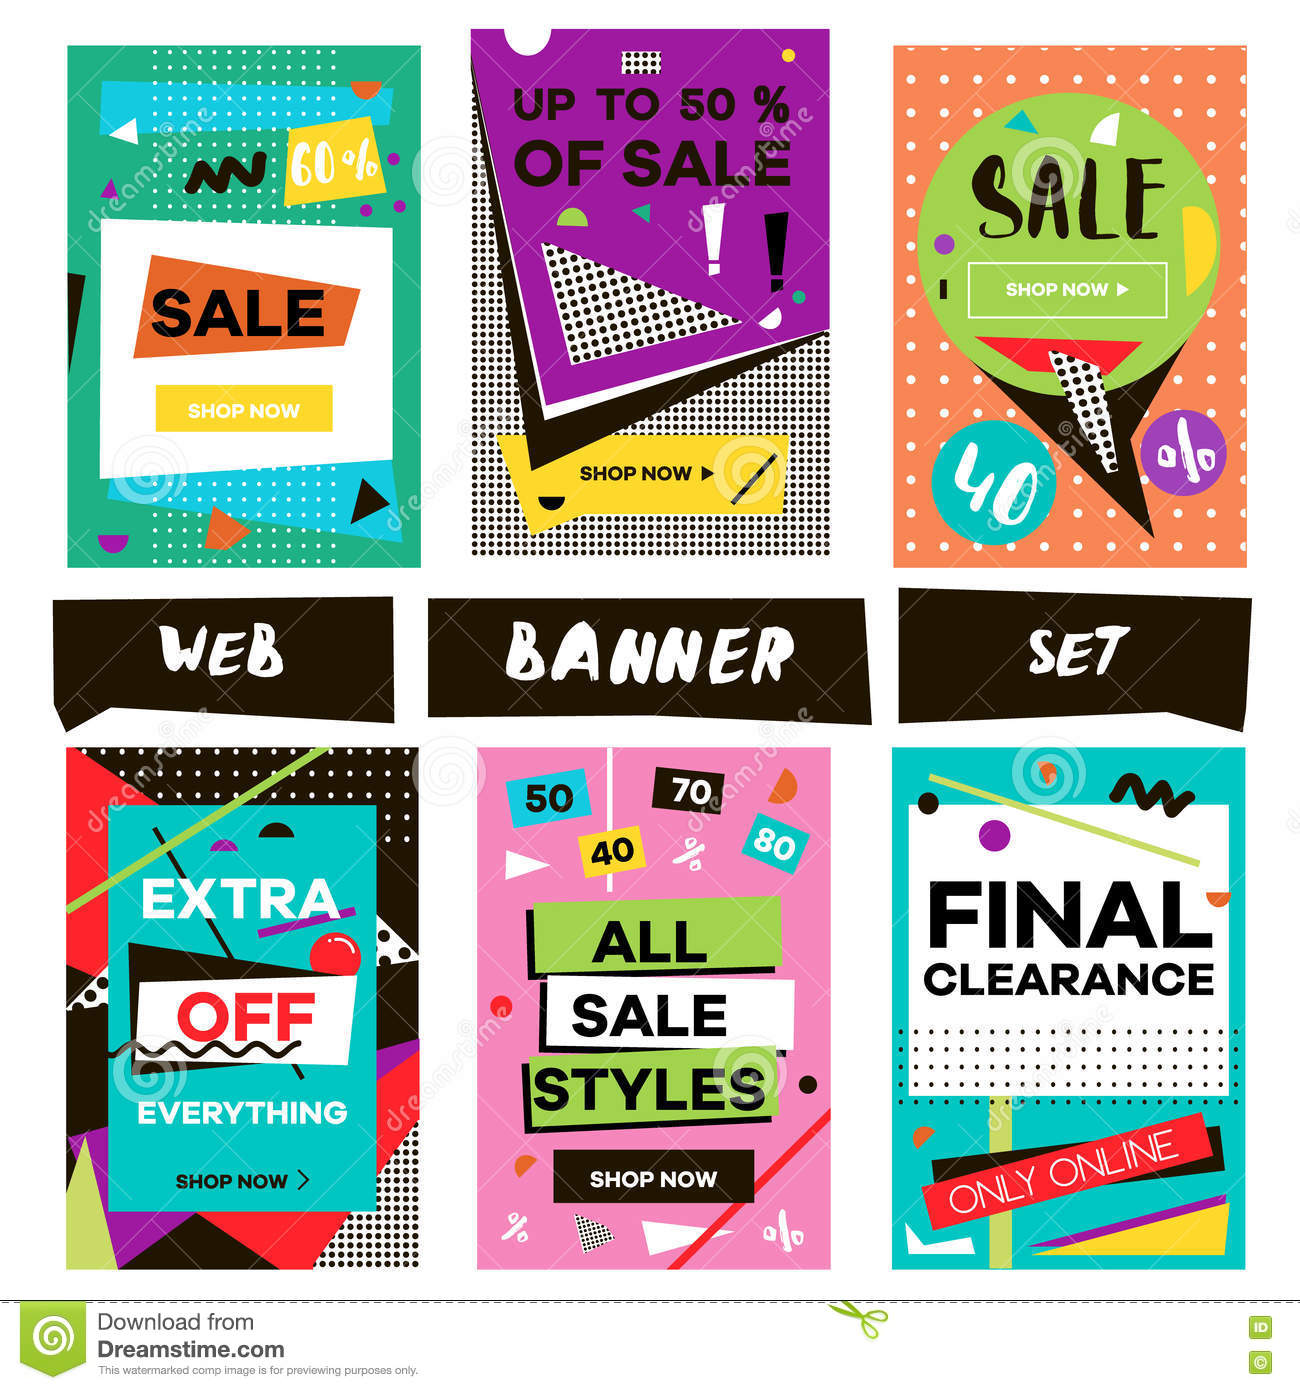 Signage cartoons illustrations vector stock images for Unique online shopping websites